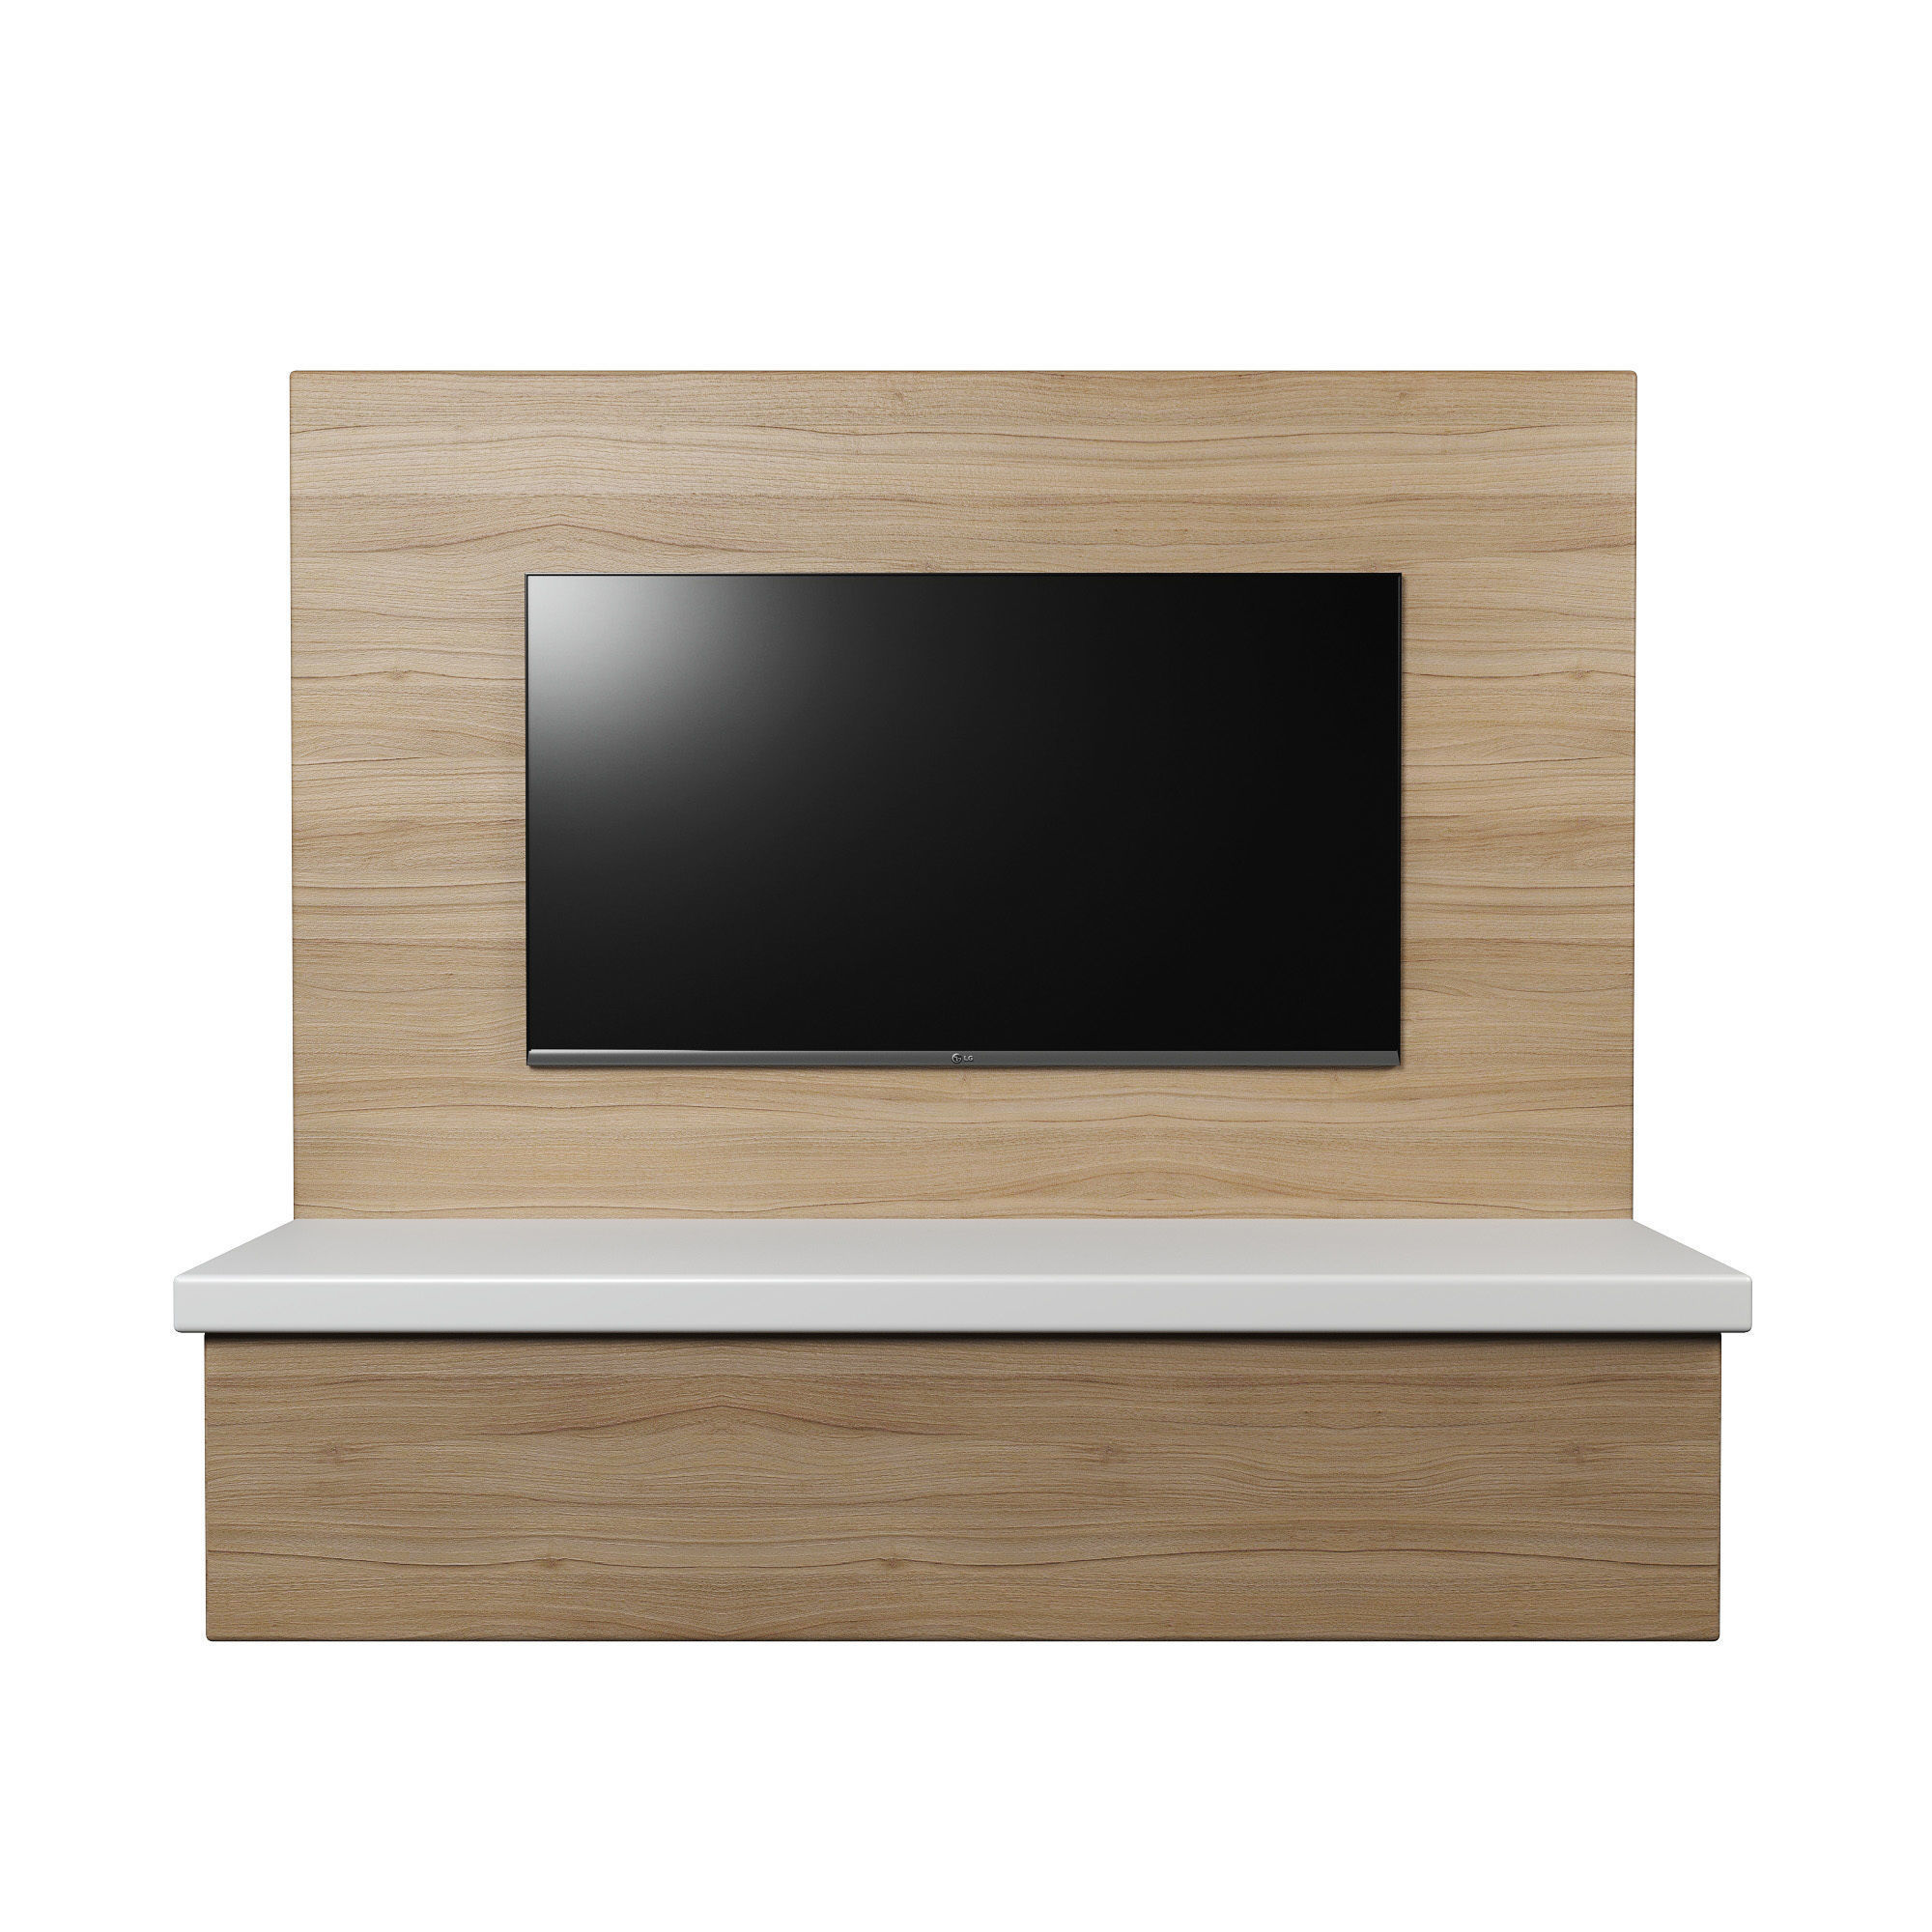 Good ... Tv Wall Panel With A Flat Screen Tv 3d Model Low Poly Obj Mtl 3ds ...